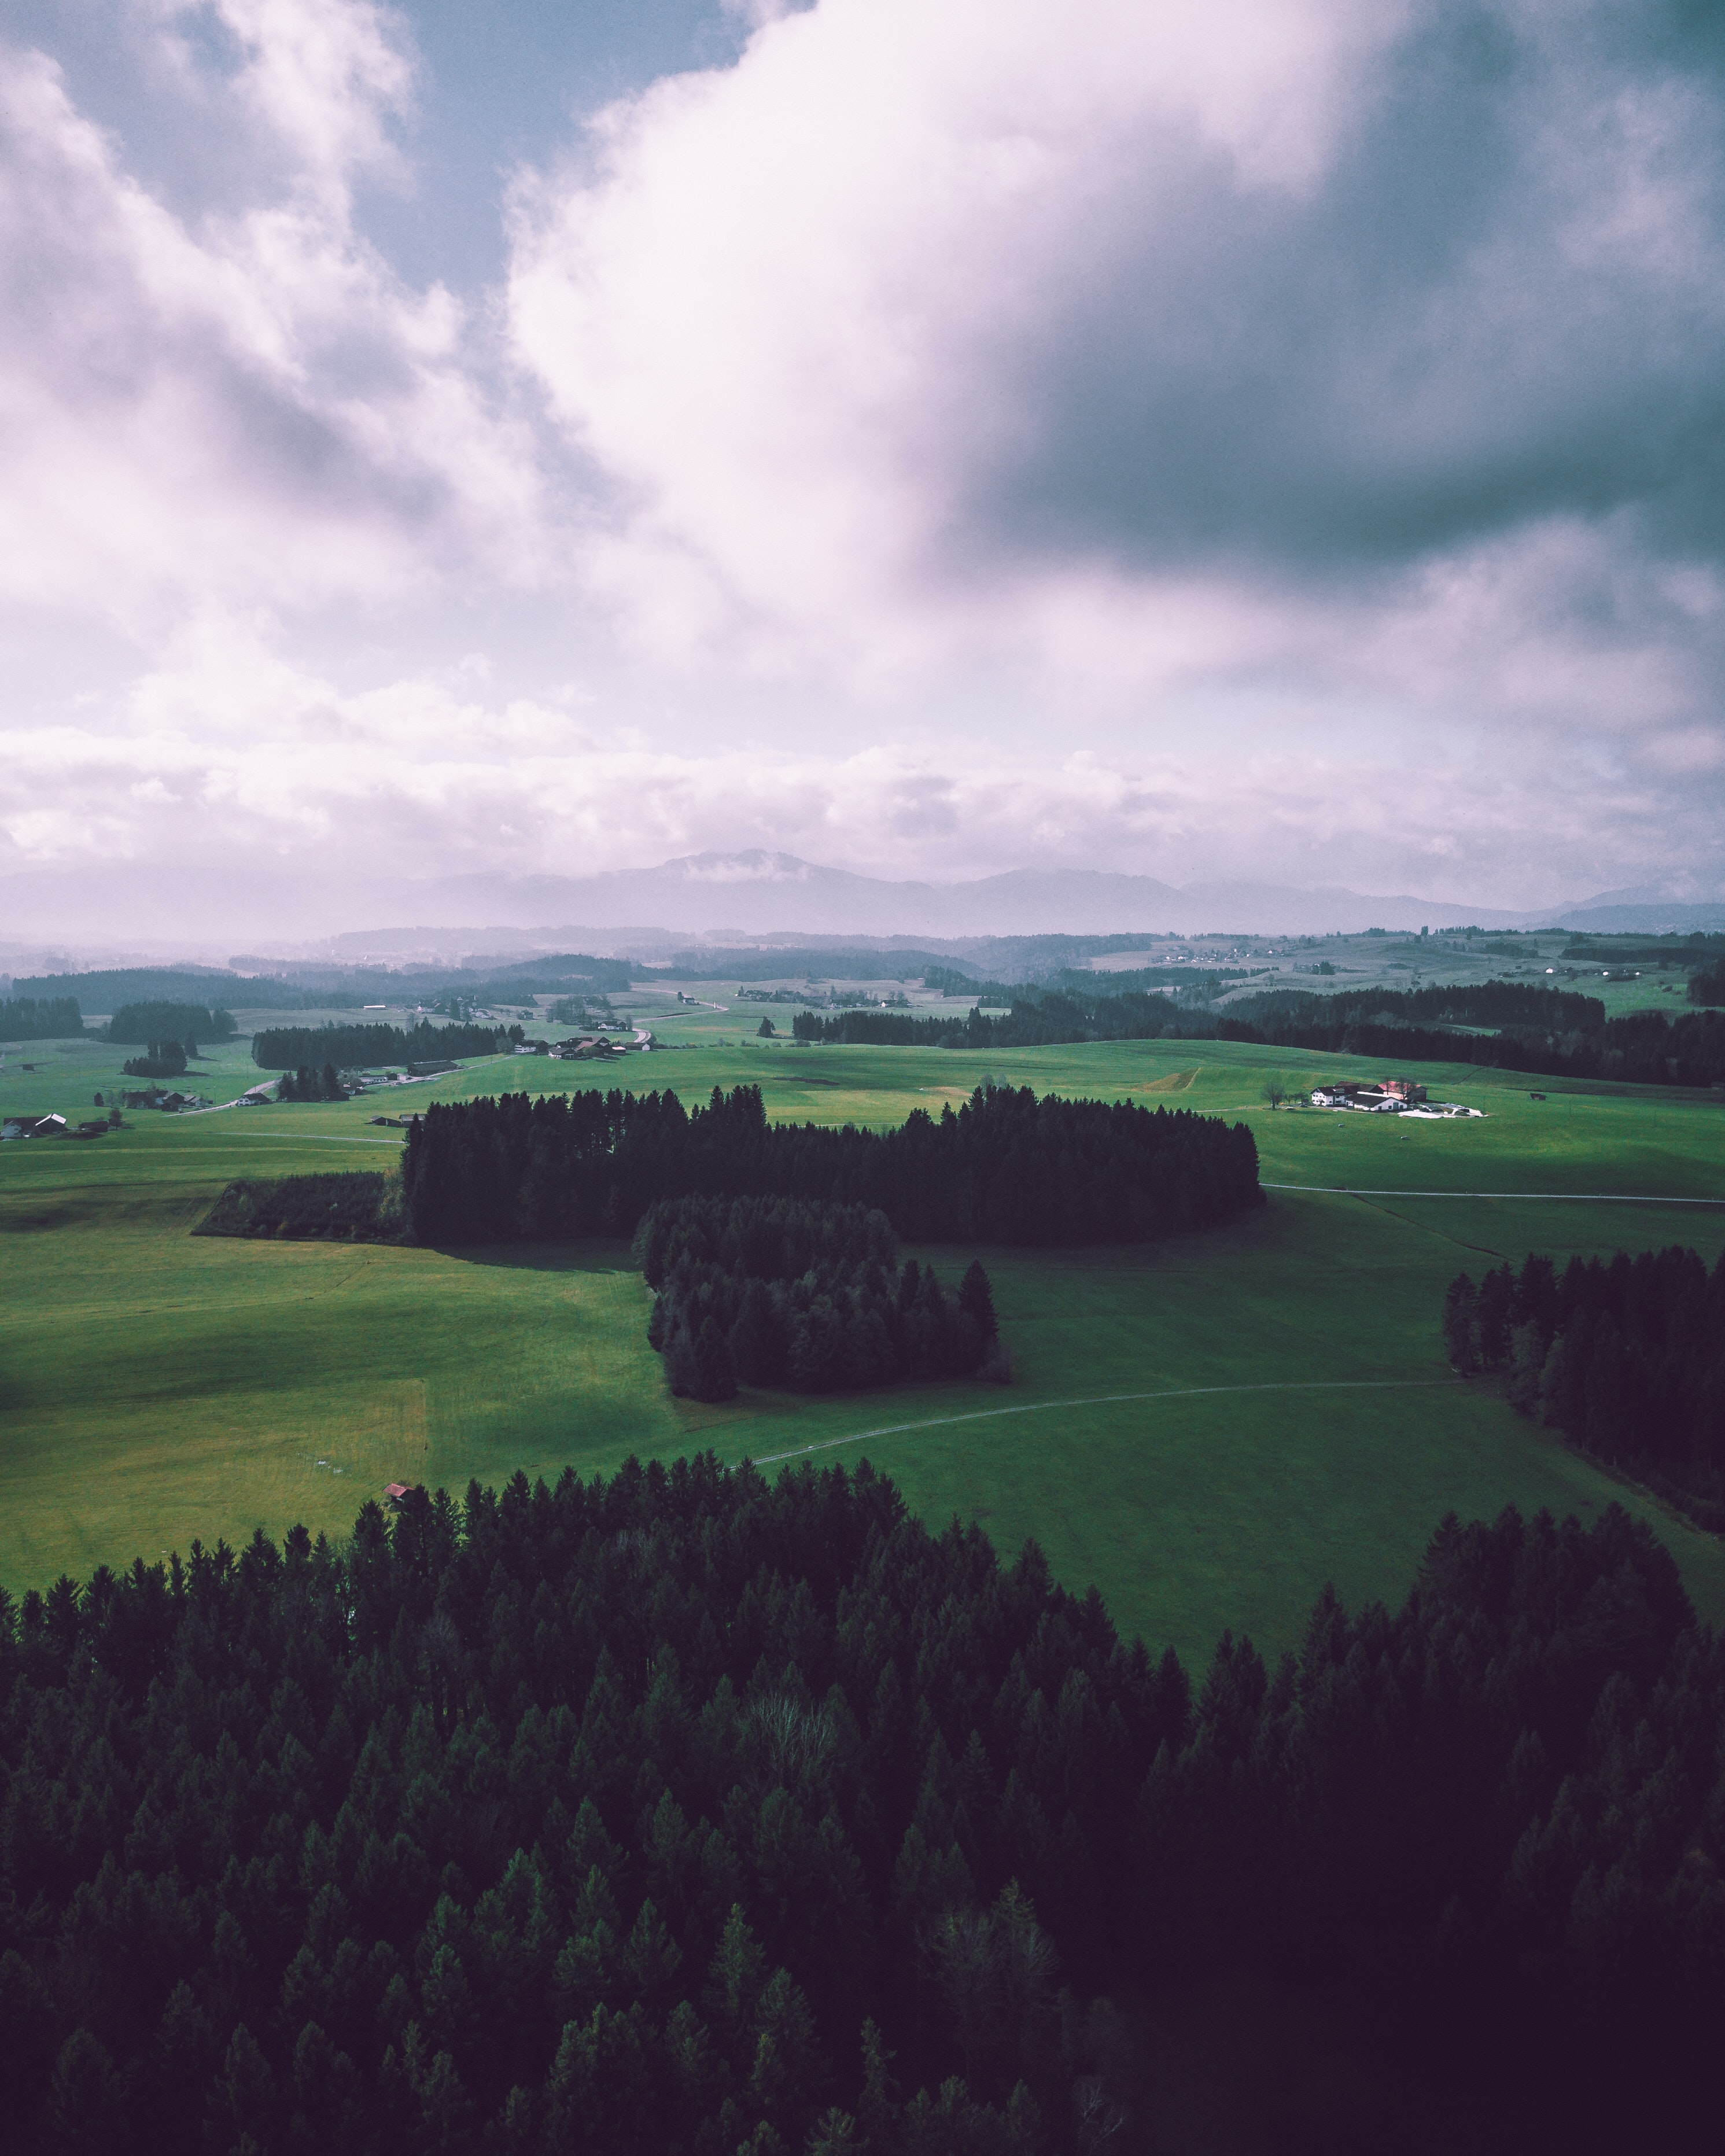 aerial photography of trees on grass field at daytime